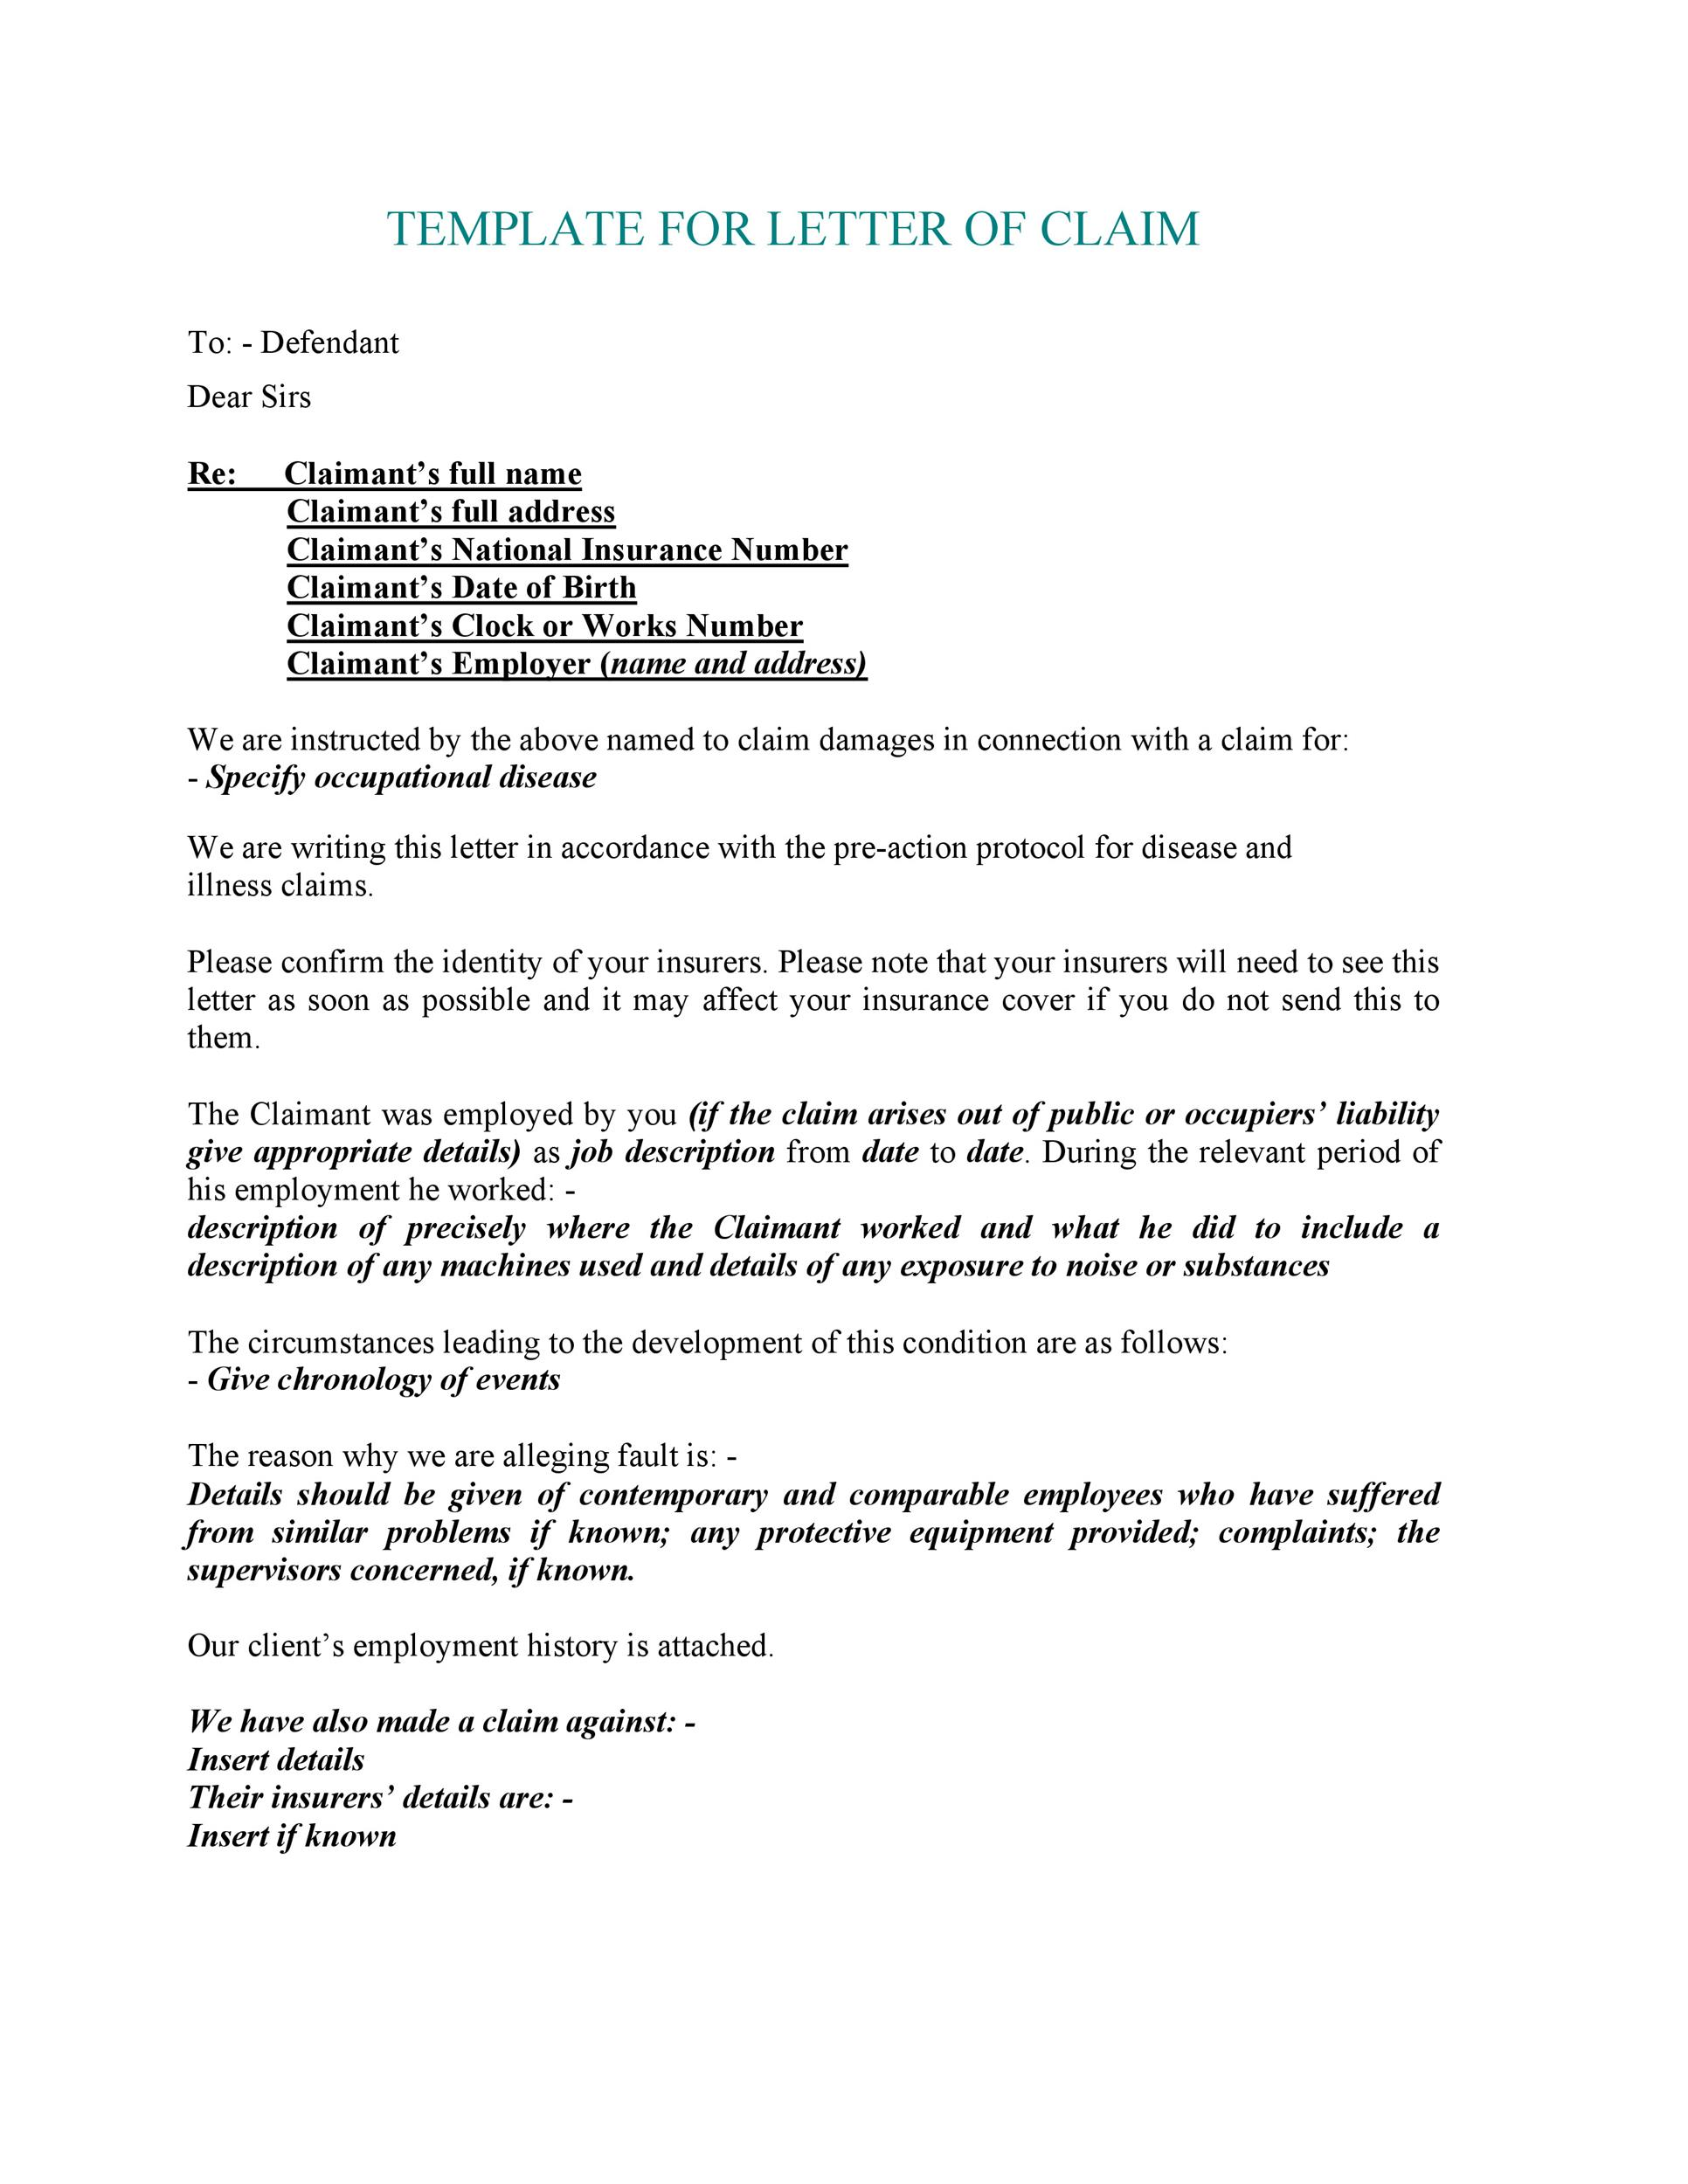 Compensation Request Letter Sample from templatelab.com